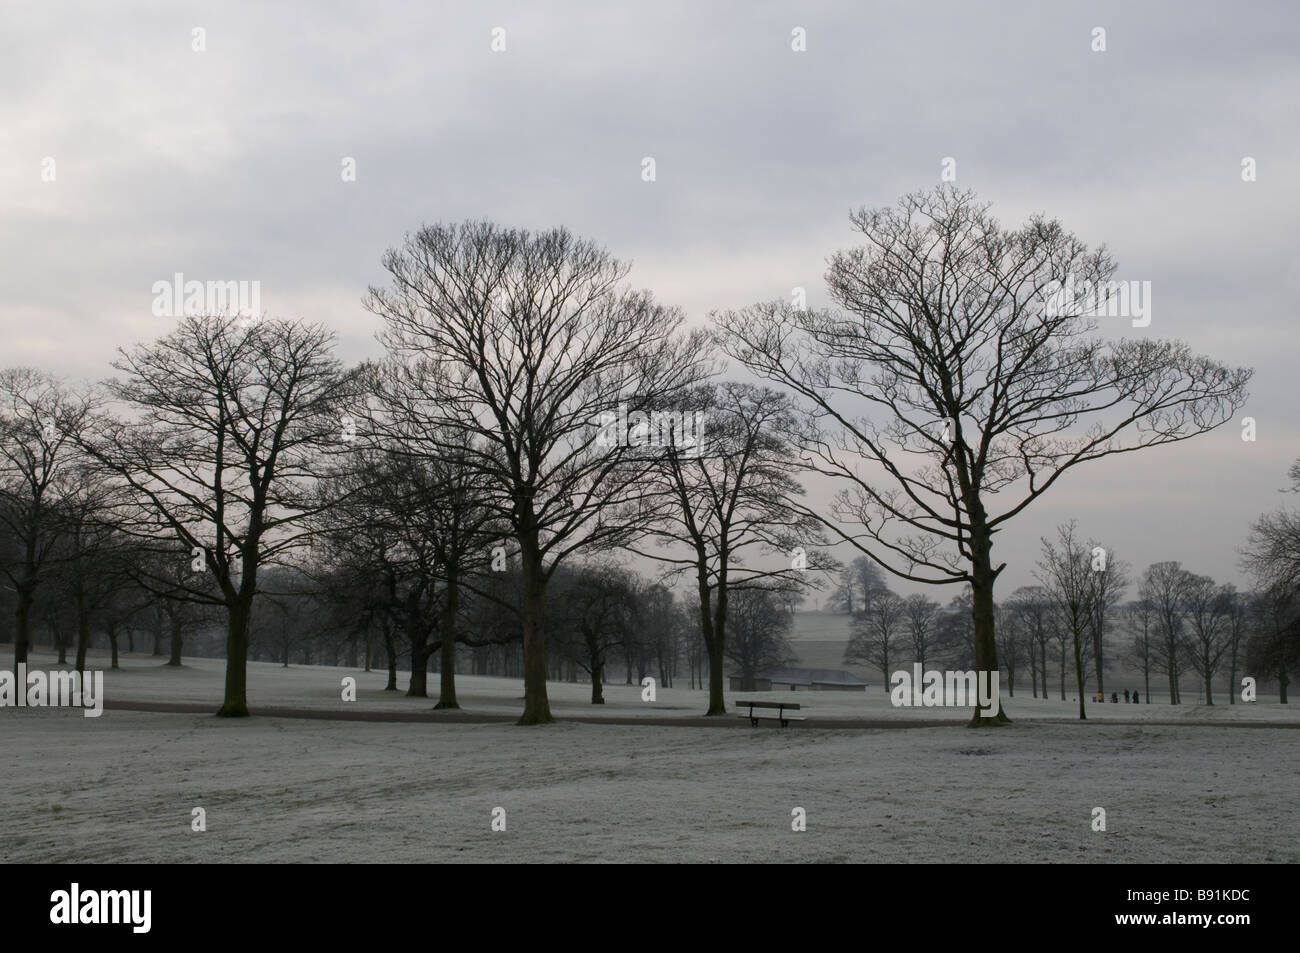 Trees lining the promenade in the winter in Roundhay Park, Leeds, England Stock Photo